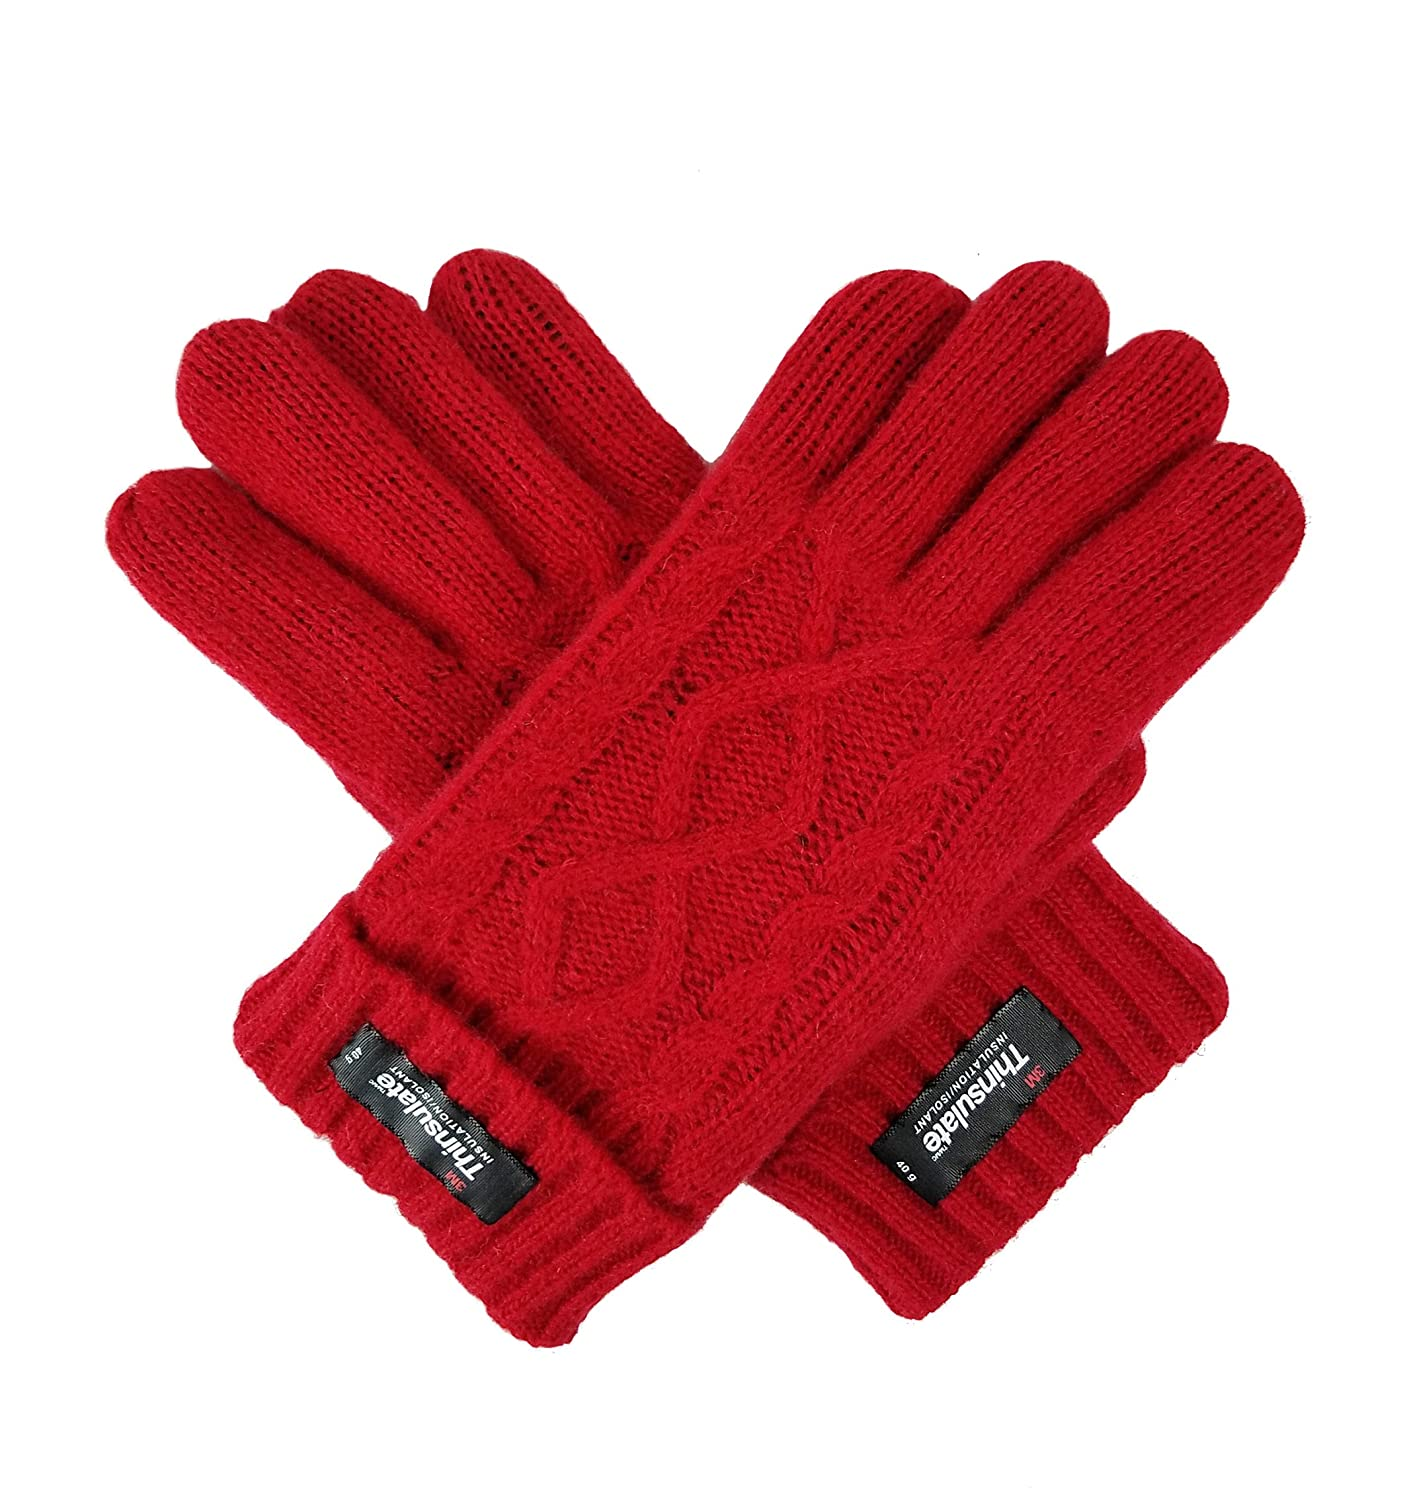 Bruceriver Women's Pure Wool Knitted Gloves with Thinsulate lining and Diamond Design BR16G130